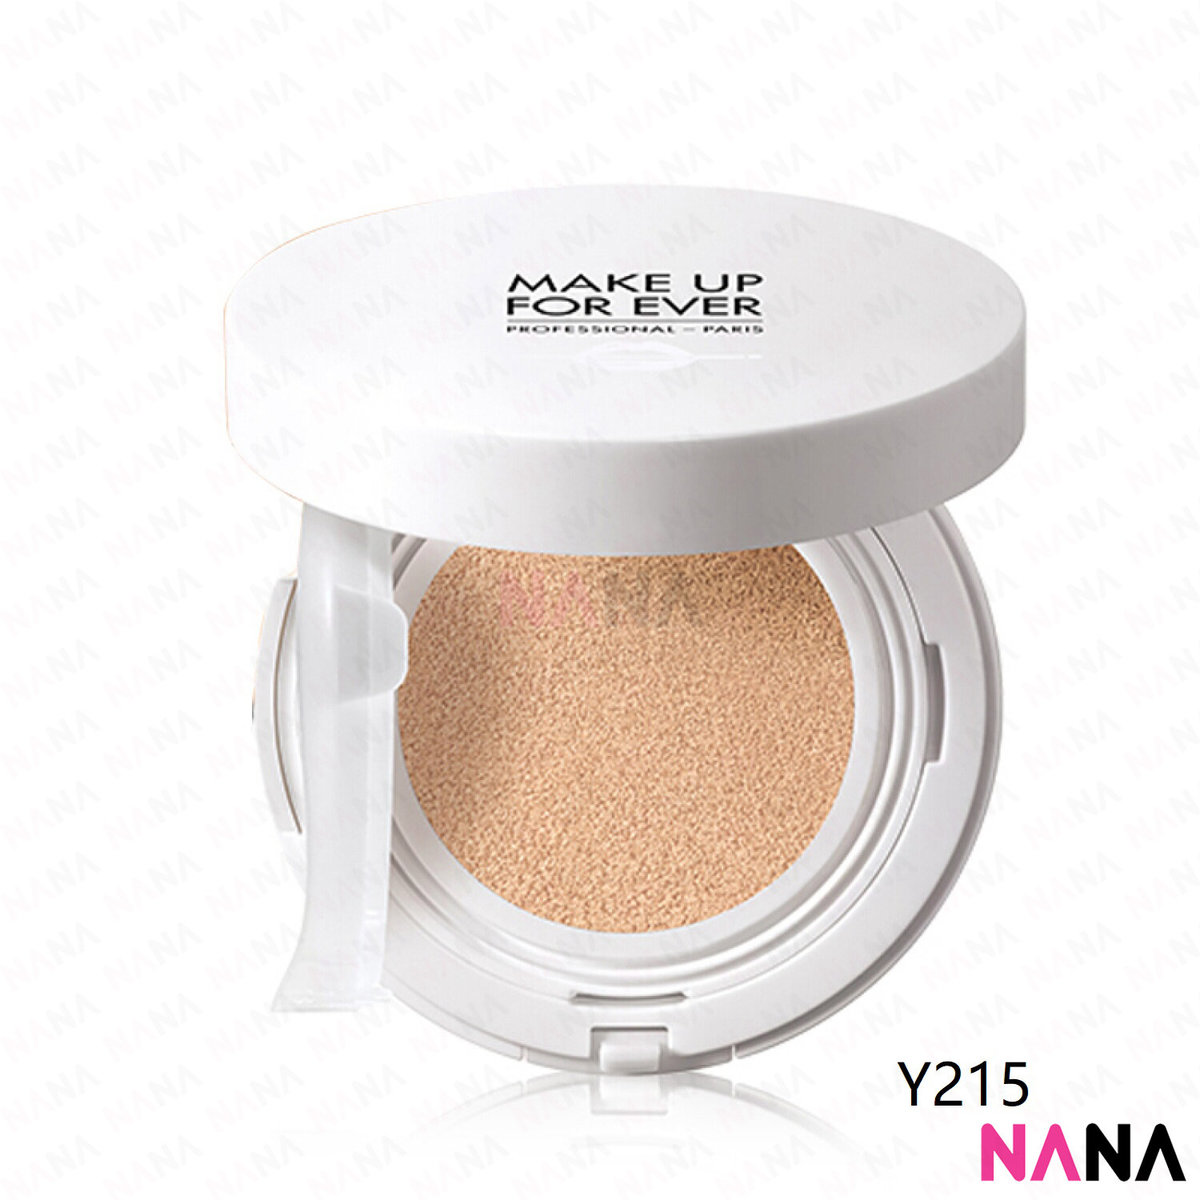 Make Up For Ever UV Bright Cushion Spf35/pa+++ Intense Moisture Dewy Foundation Y215 15g x 2